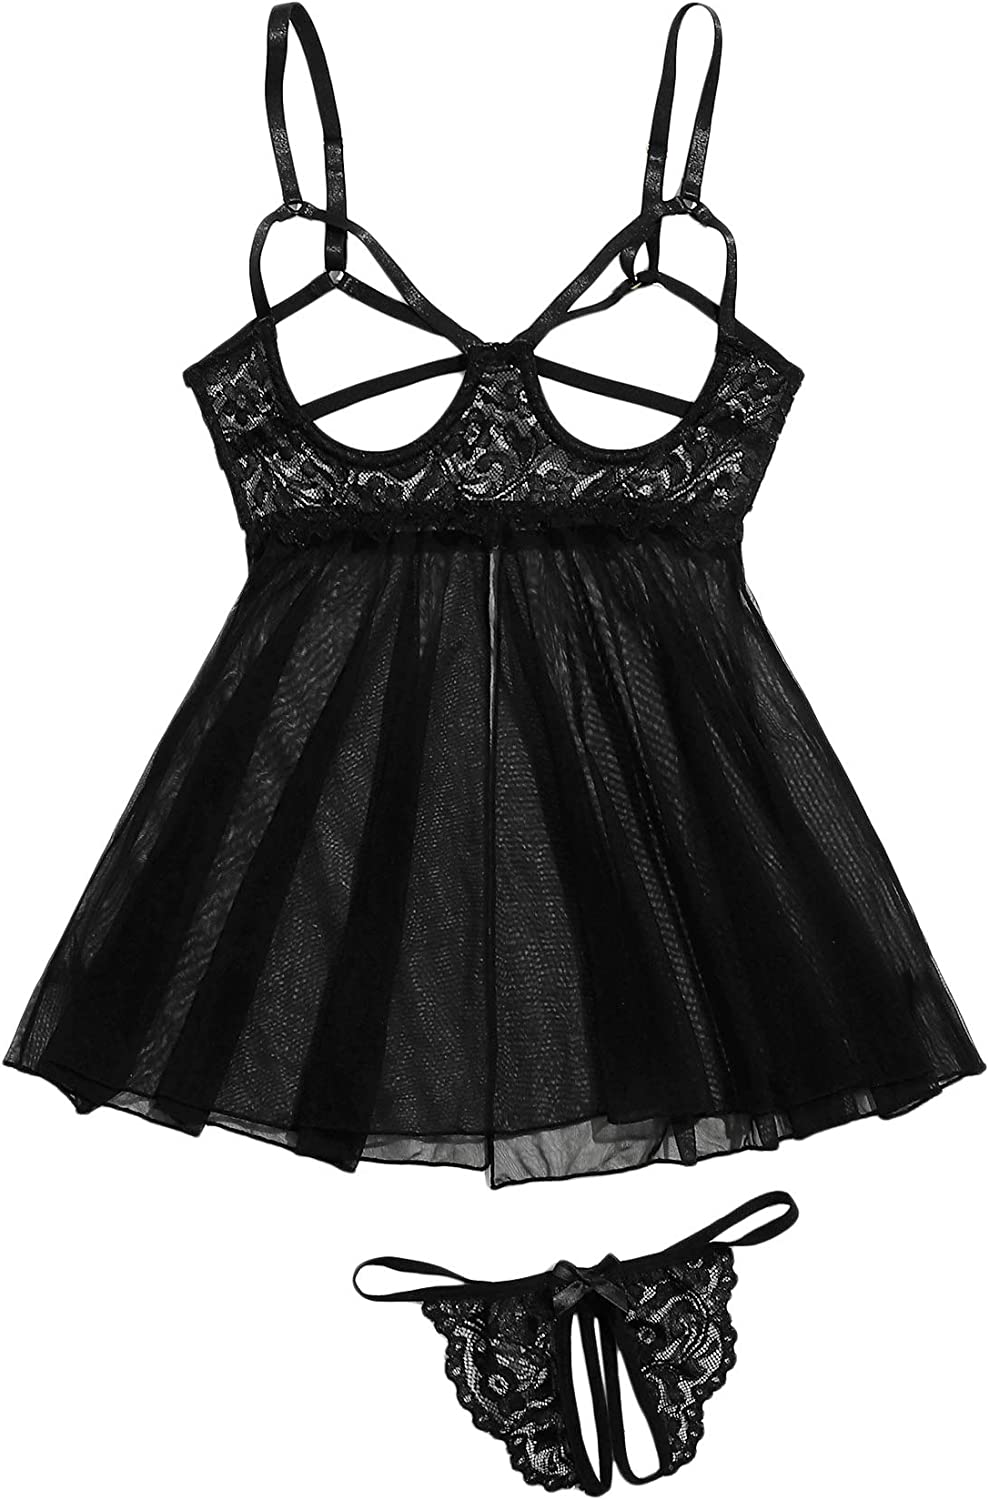 SweatyRocks Women's Contrast Ranking TOP4 Lace Cut NEW before selling ☆ Slips Out Lingerie an Mesh